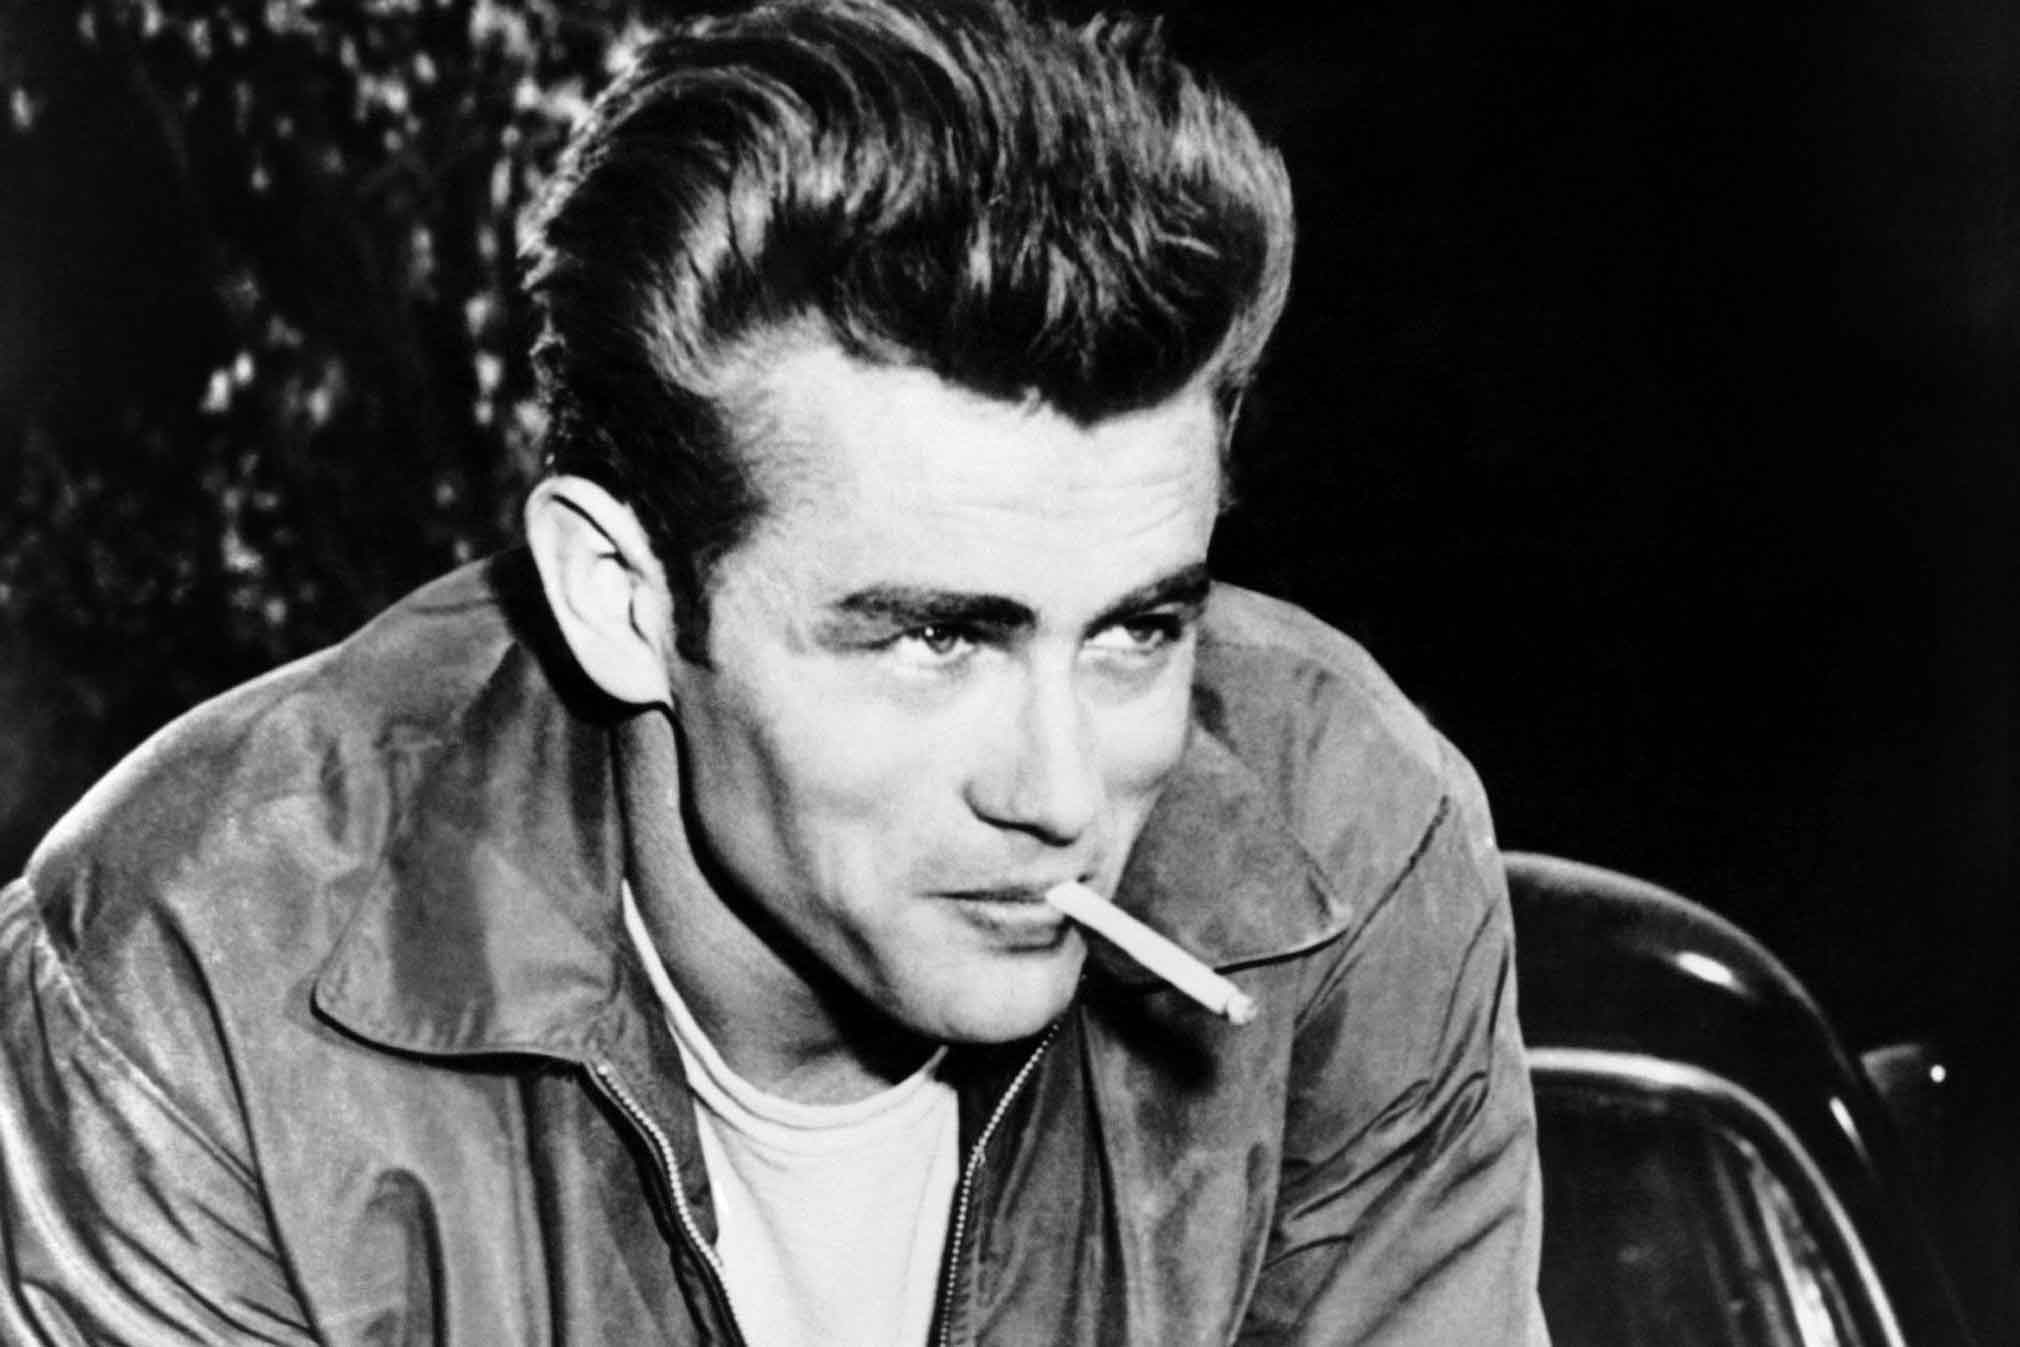 Would James Dean have turned into another James Franco?